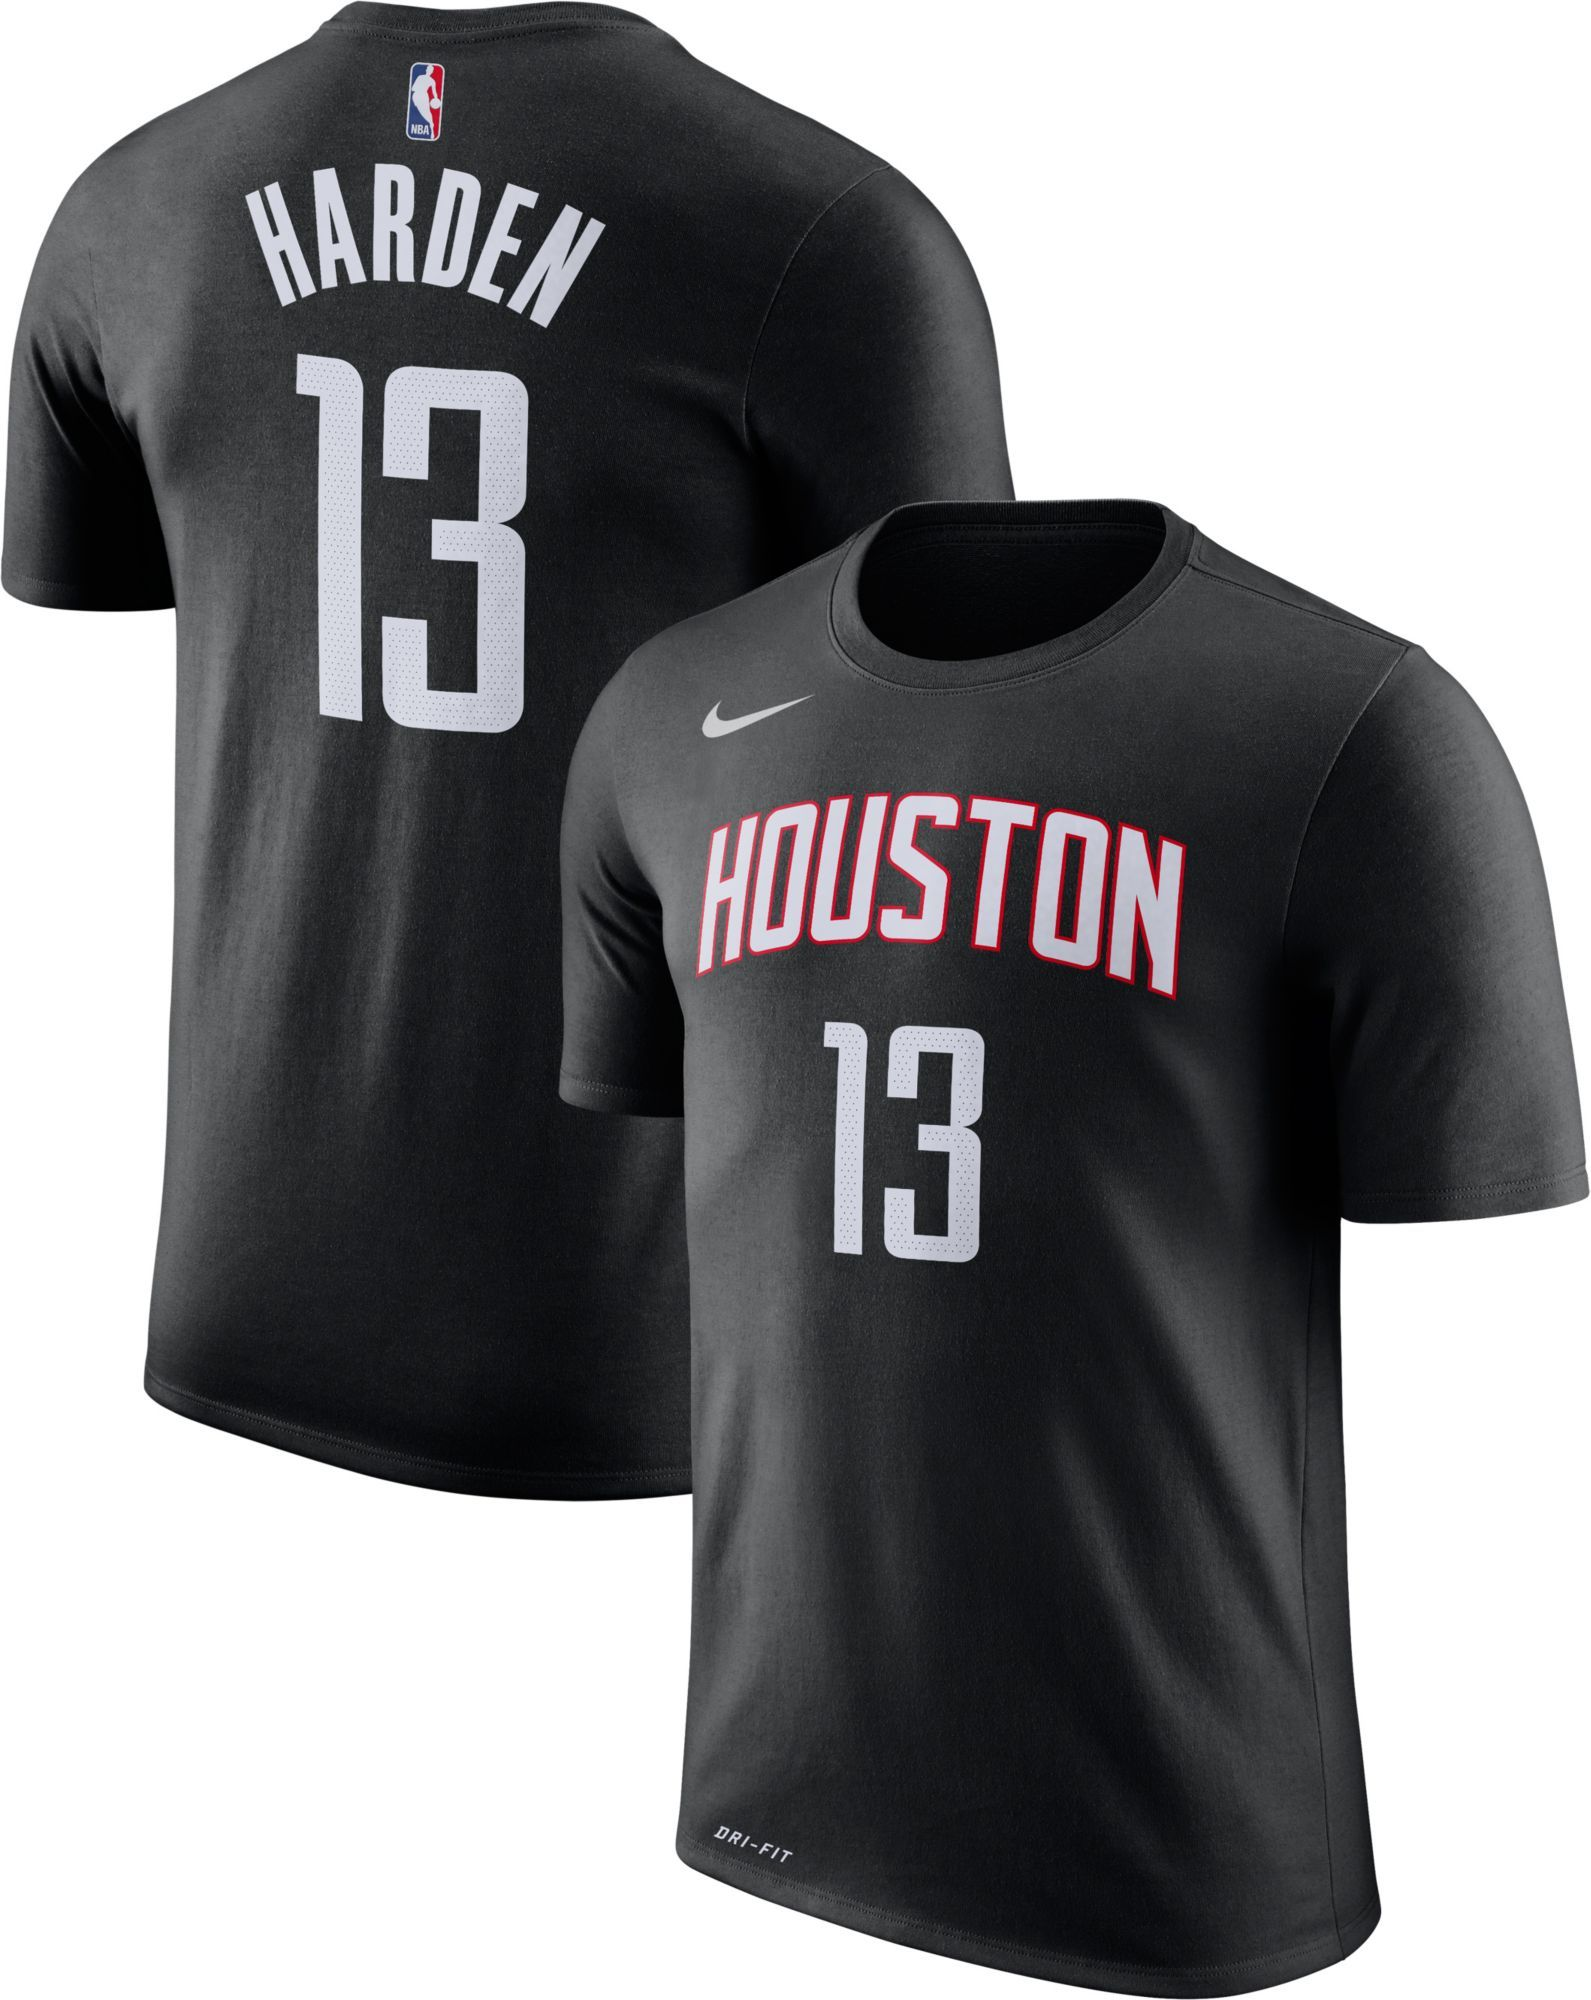 e10bca29a Nike Youth Houston Rockets James Harden  13 Dri-FIT Black T-Shirt ...